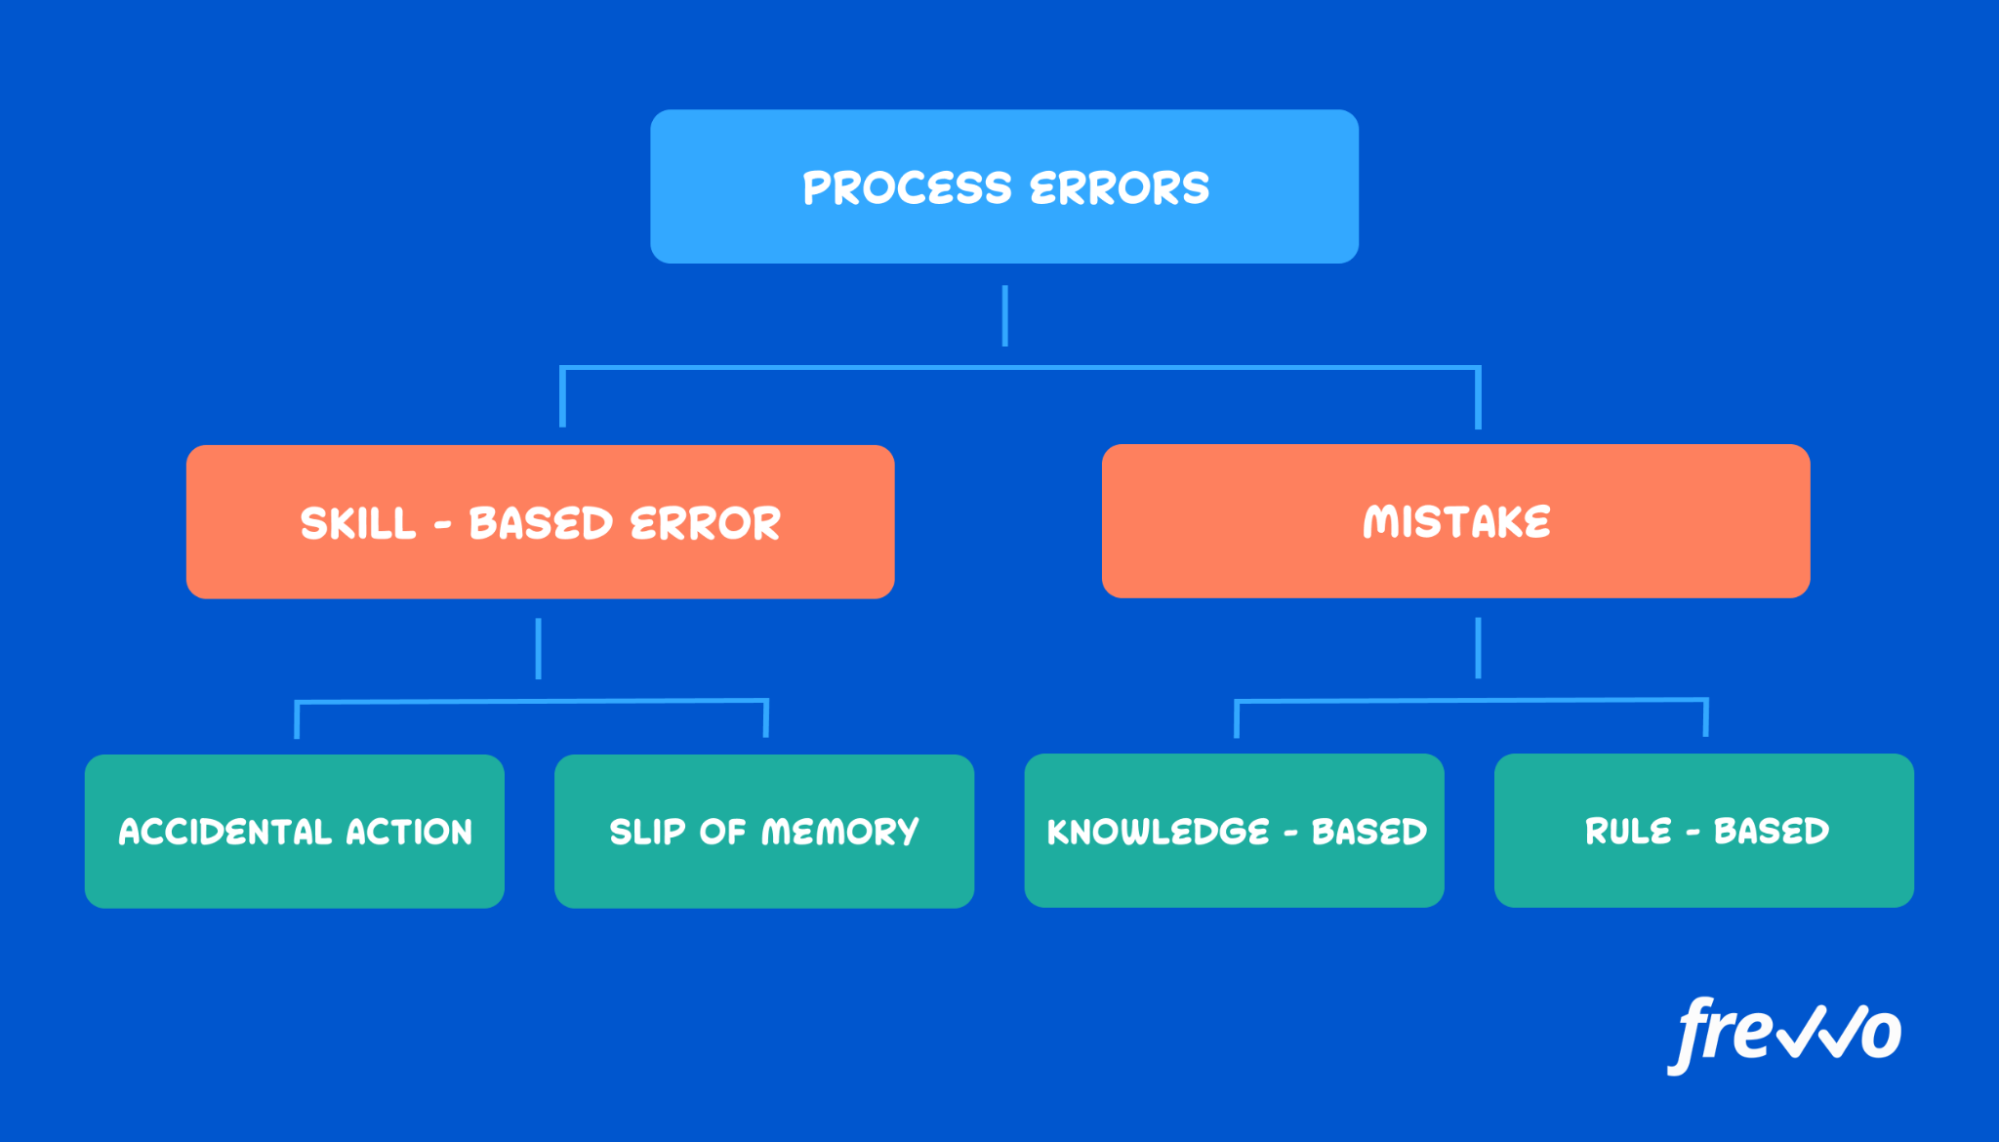 different types of process errors